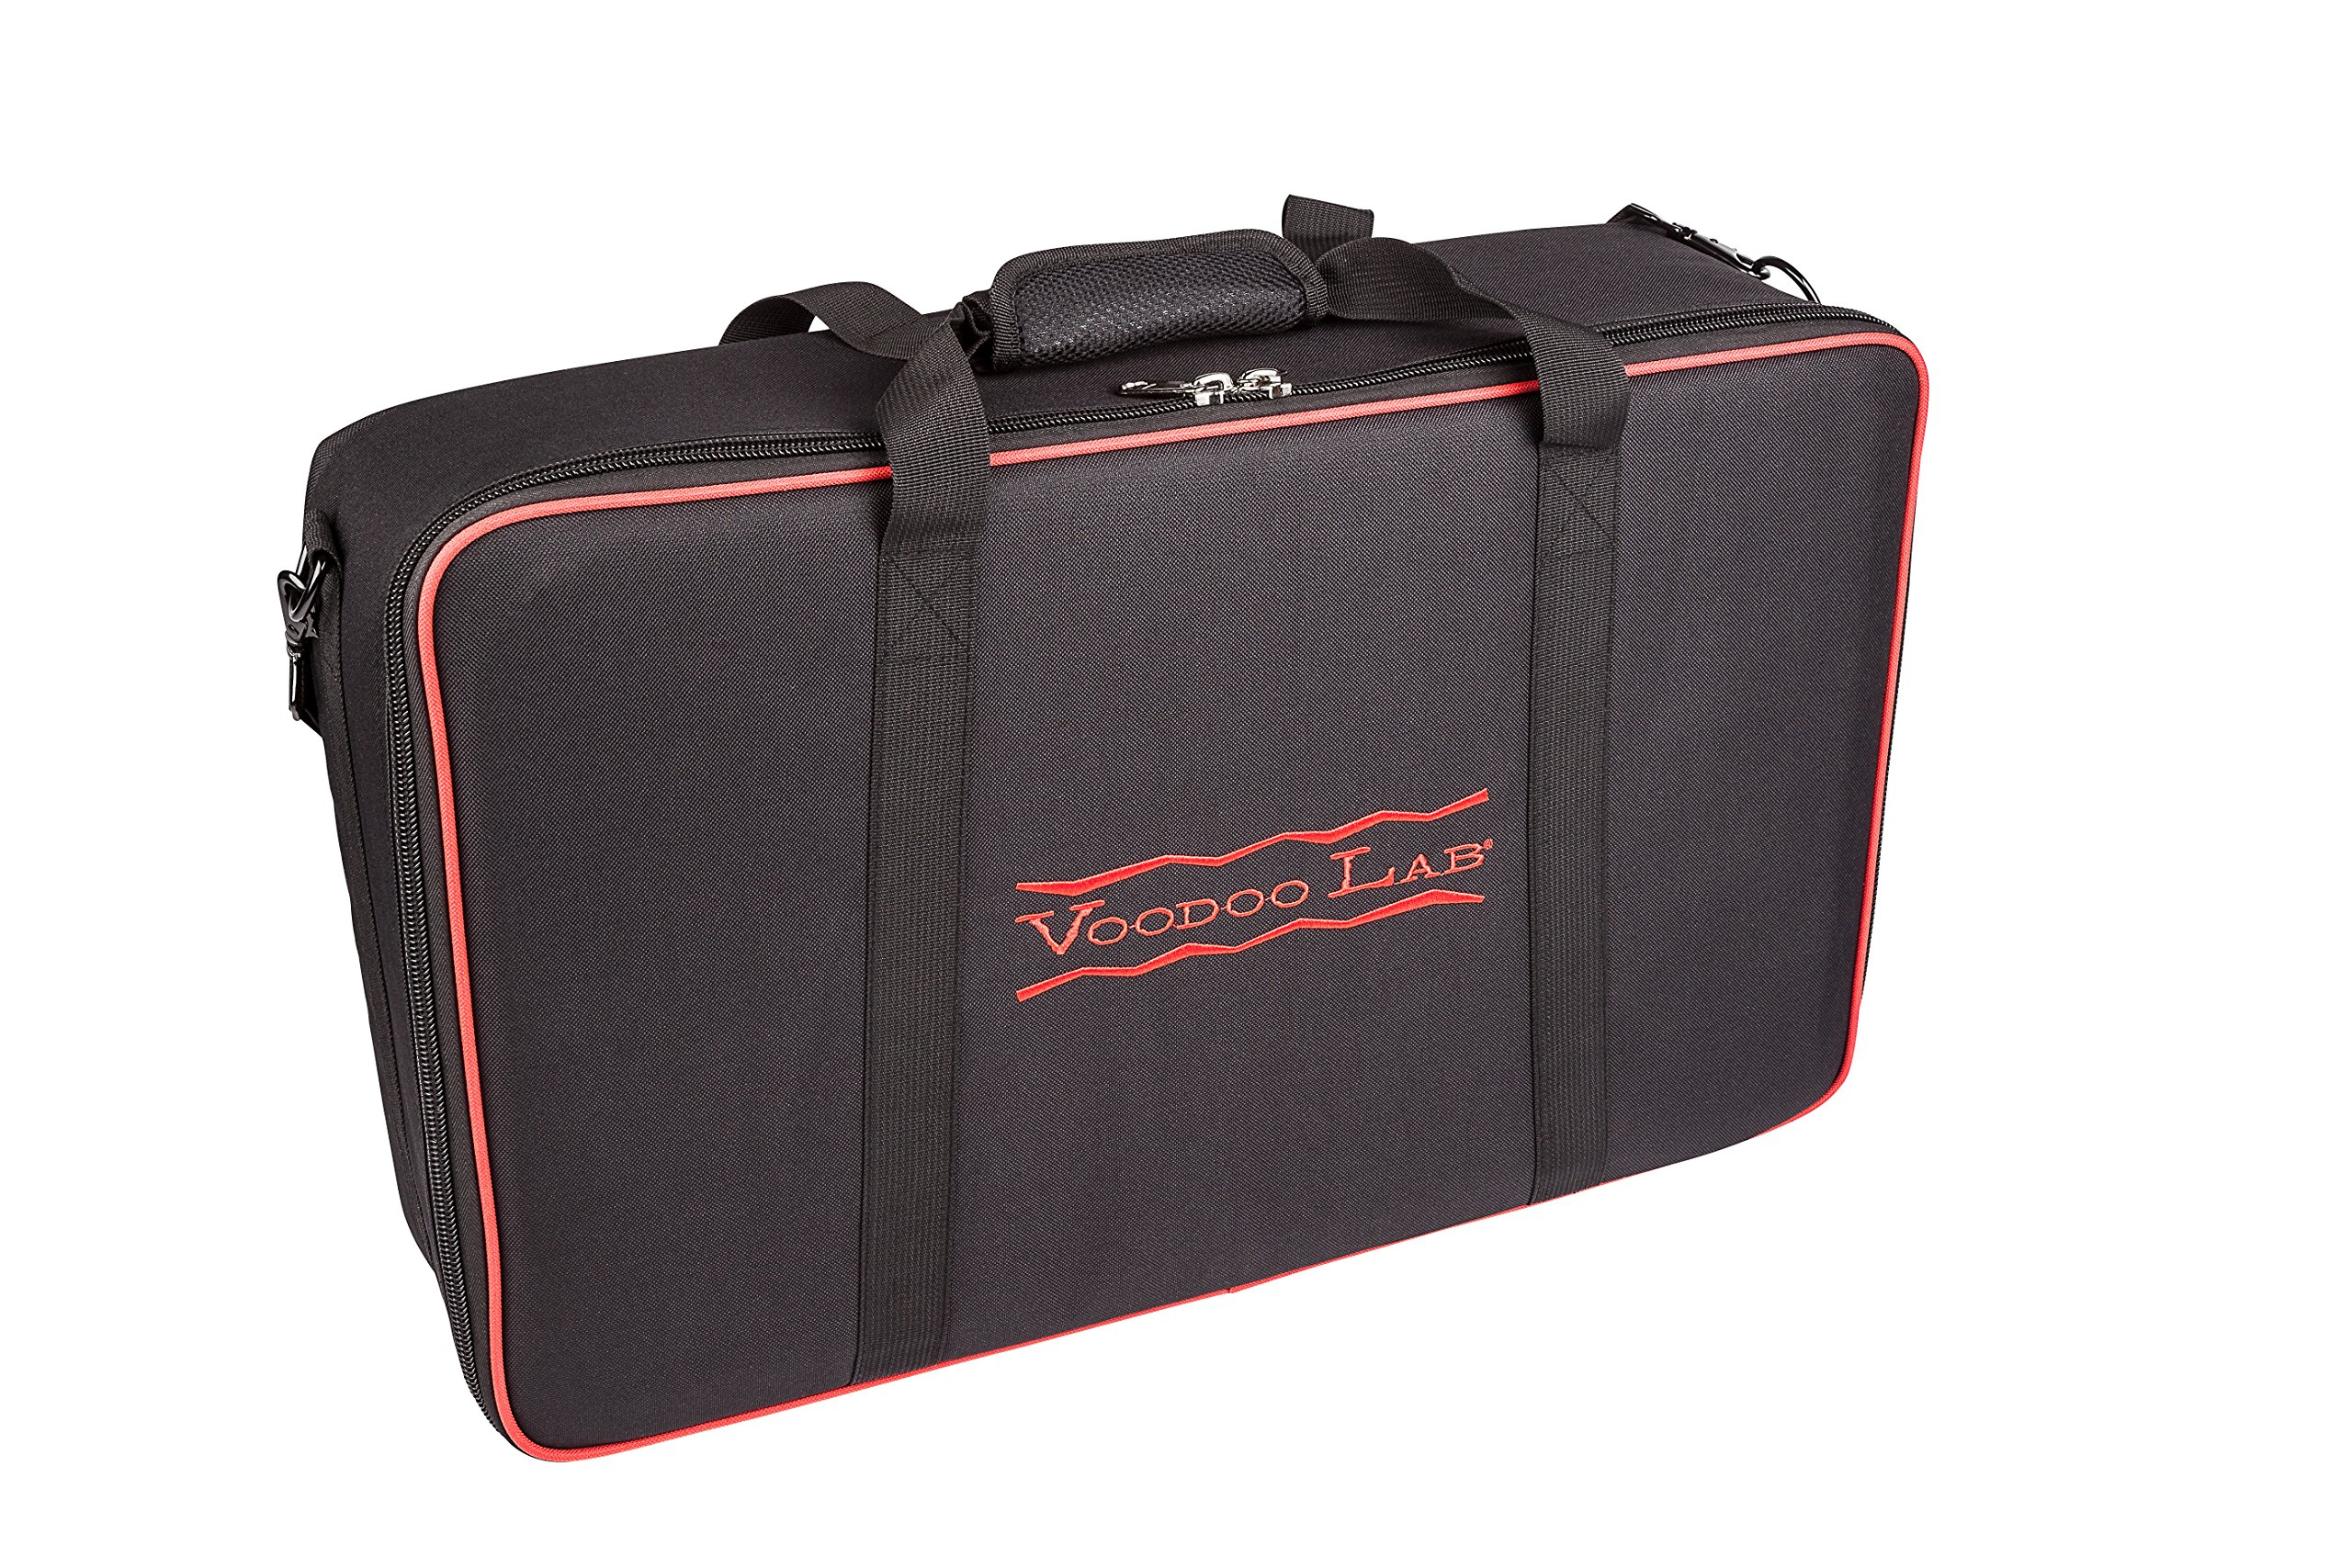 Voodoo Lab Dingbat Medium Pedalboard with Pedal Power 4x4 Power Supply & Bag by Voodoo Lab (Image #11)